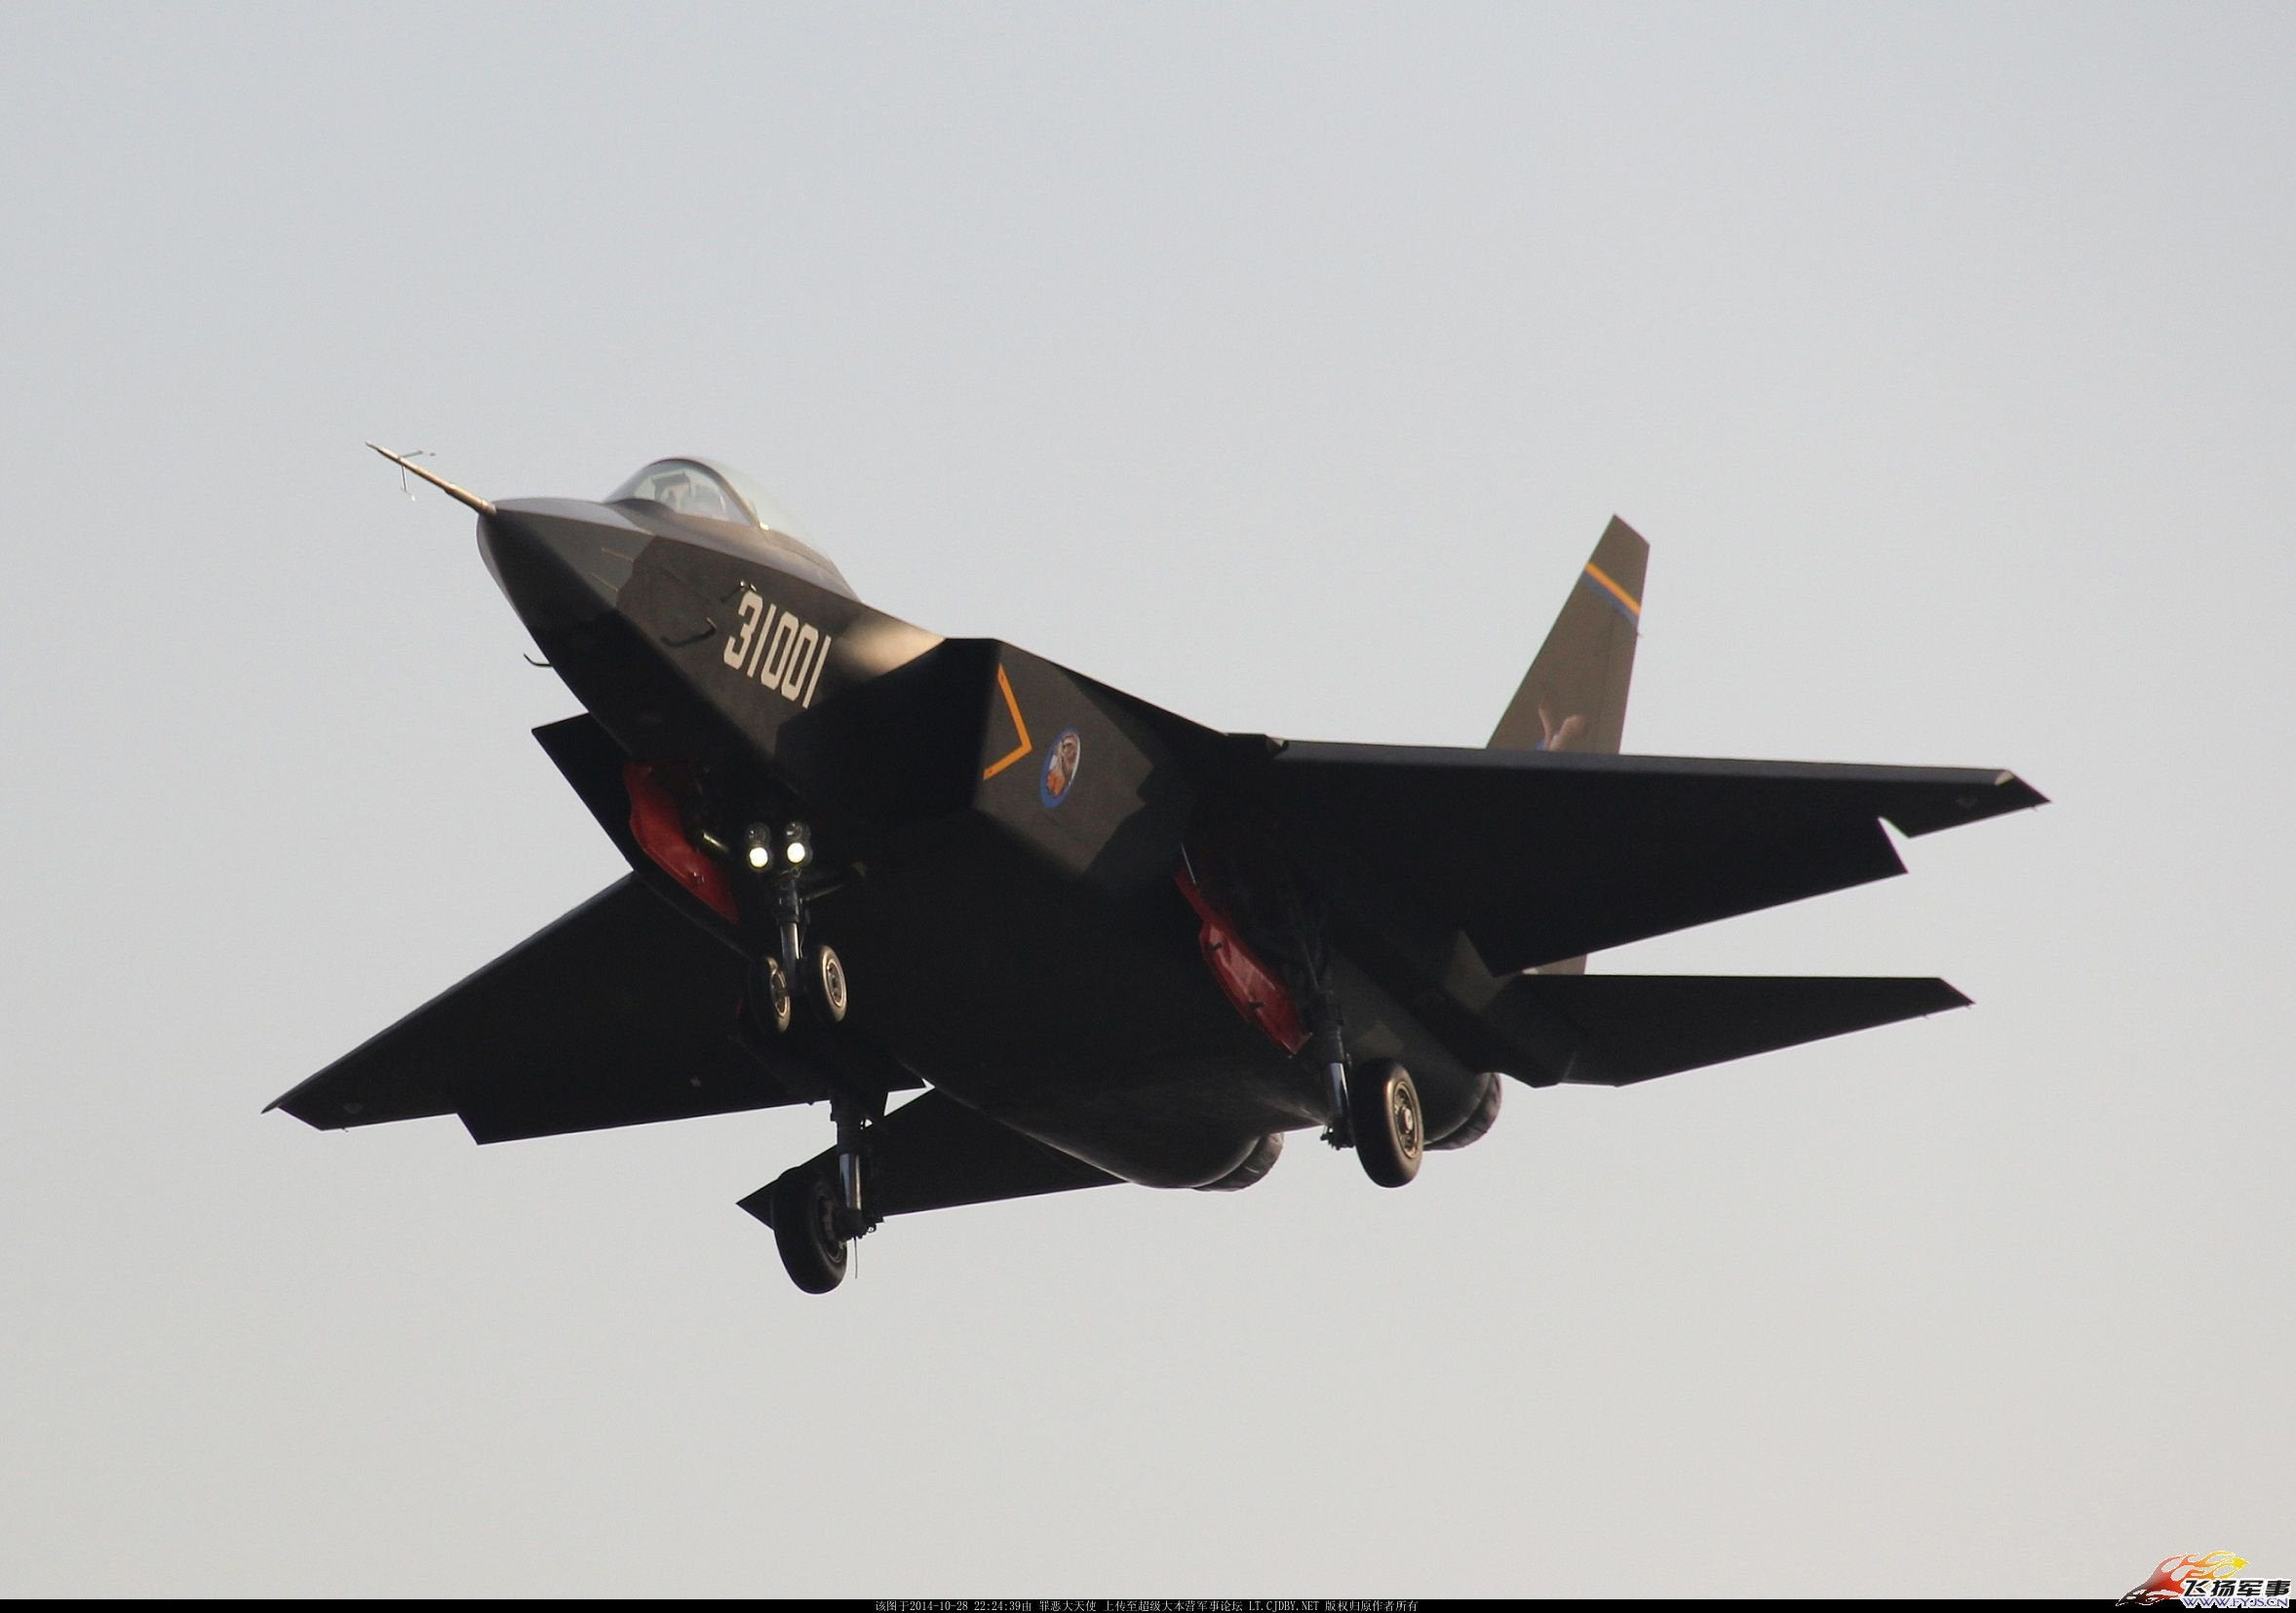 What New Chinese Weapons Will We See at This Year's Zhuhai Air Show?